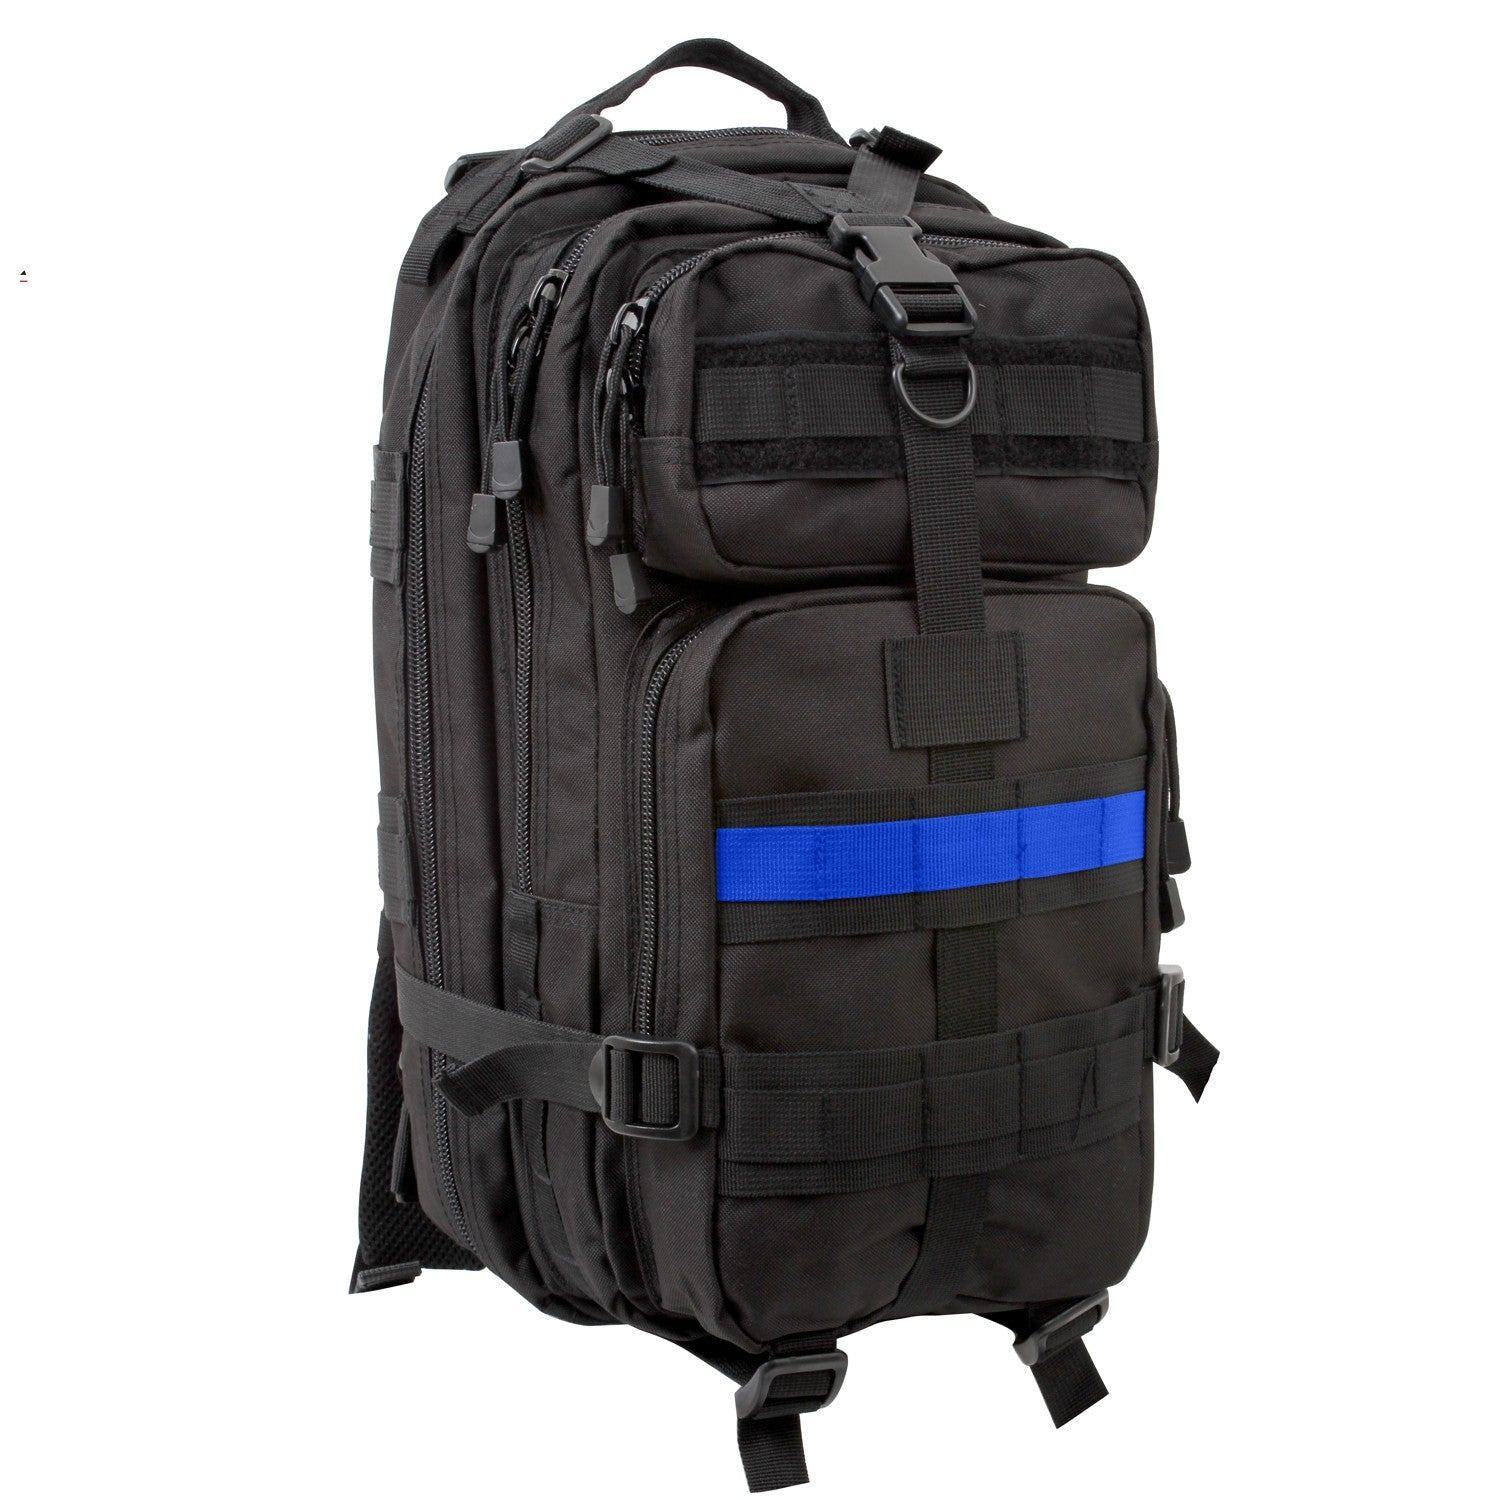 Medium Transport Pack Black Thin Blue Line